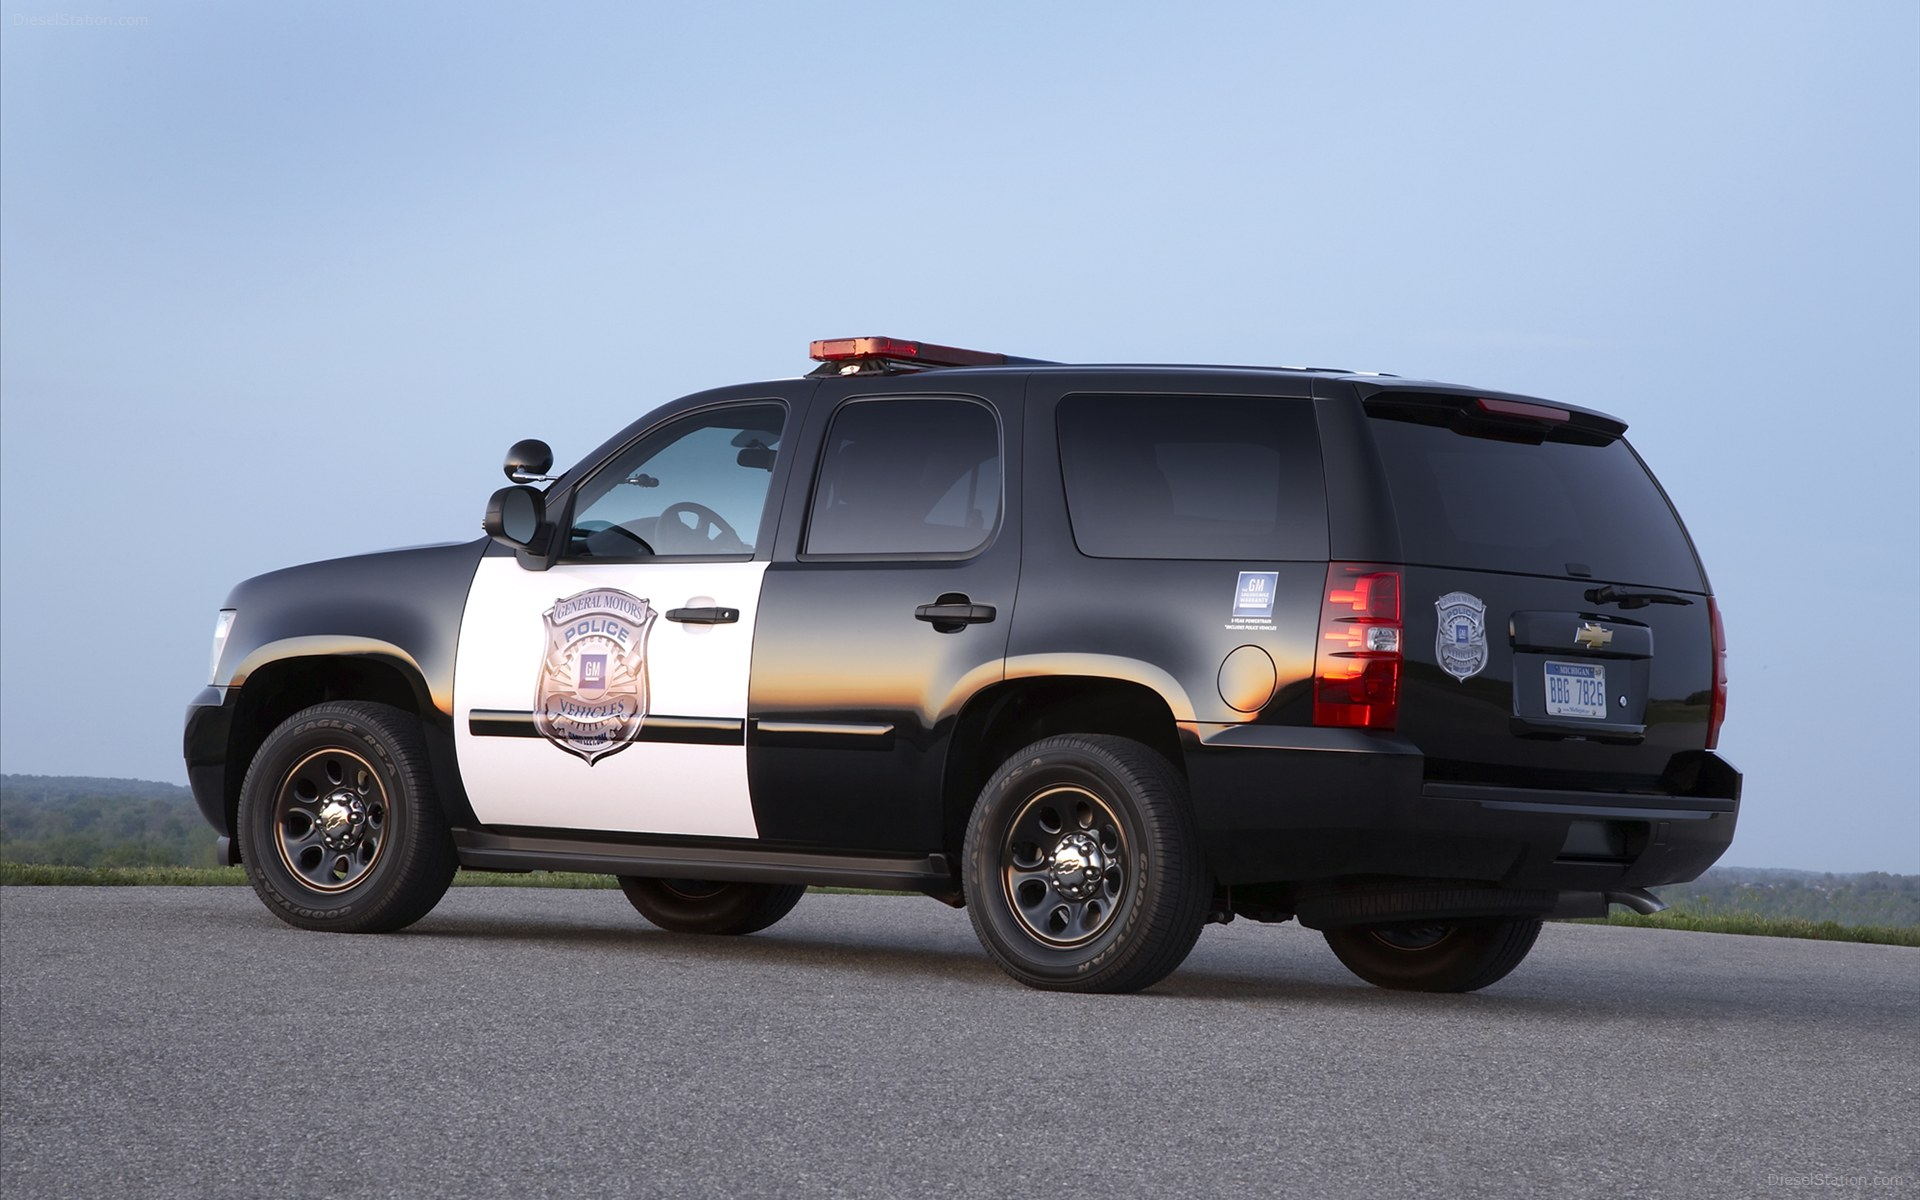 Chevrolet Tahoe PPV 2013 - Car Image at Dieselstation